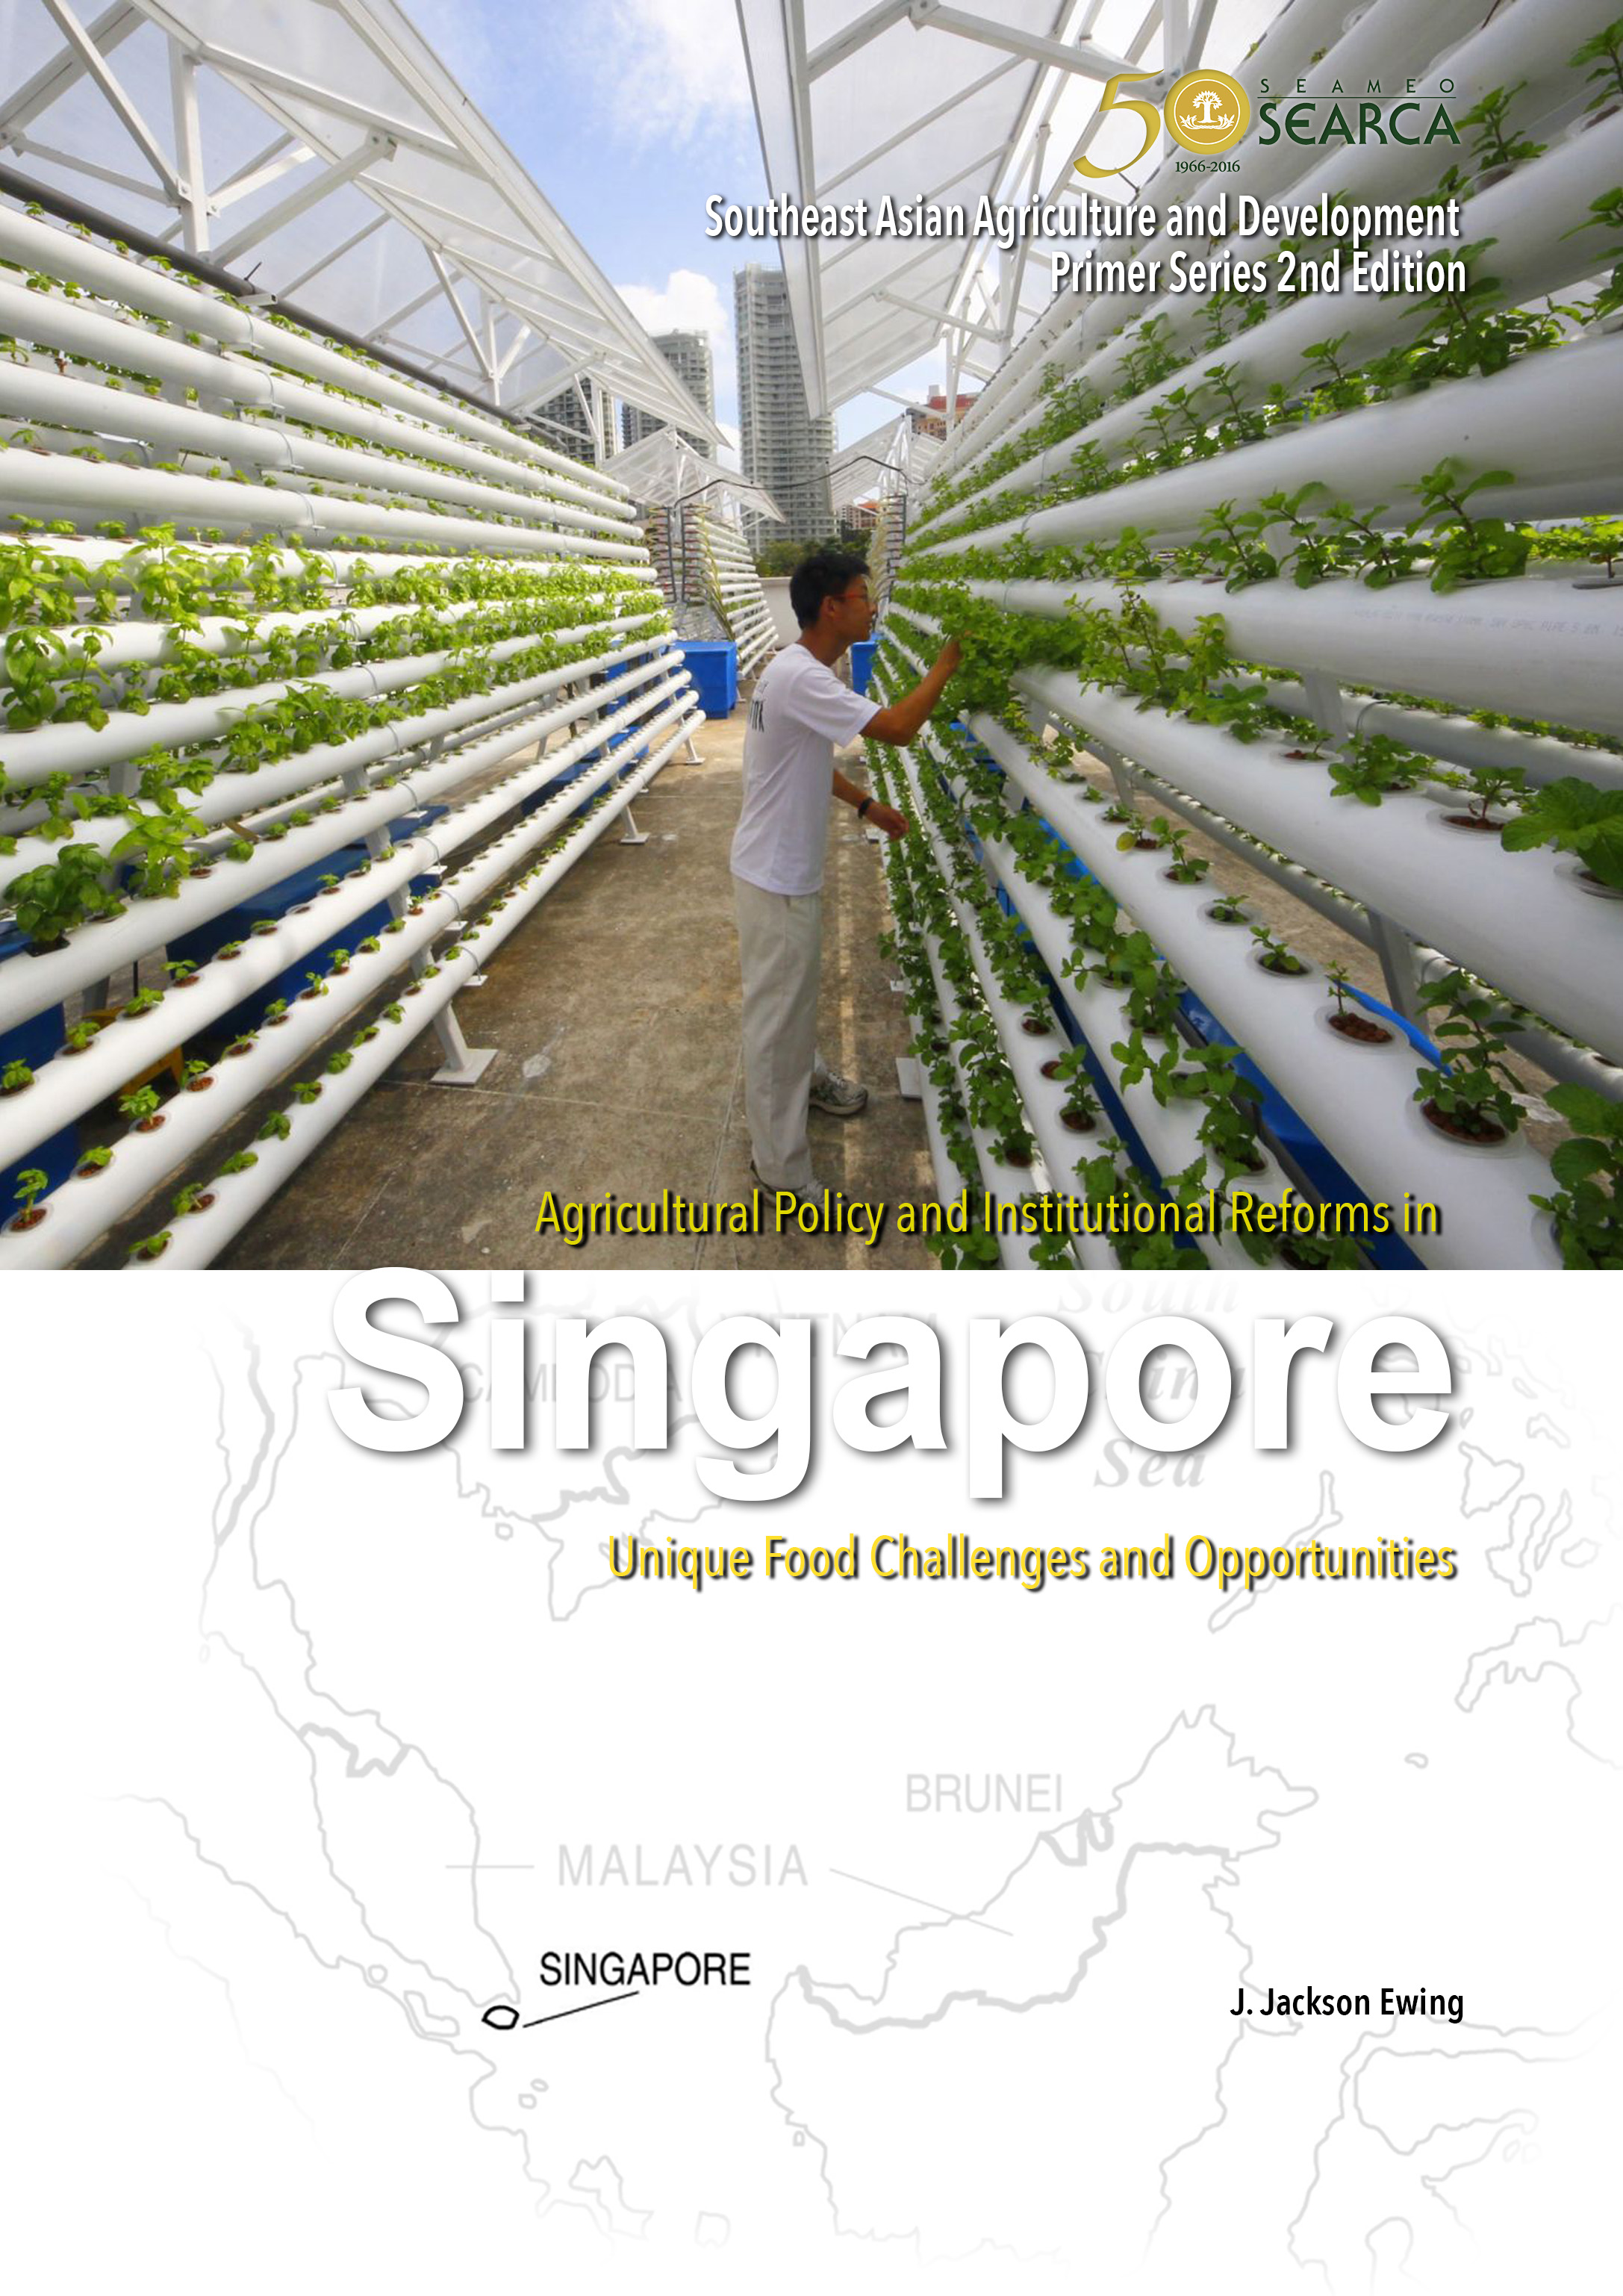 Agricultural Policy and Institutional Reforms in Singapore:Unique Food Challenges and Opportunities